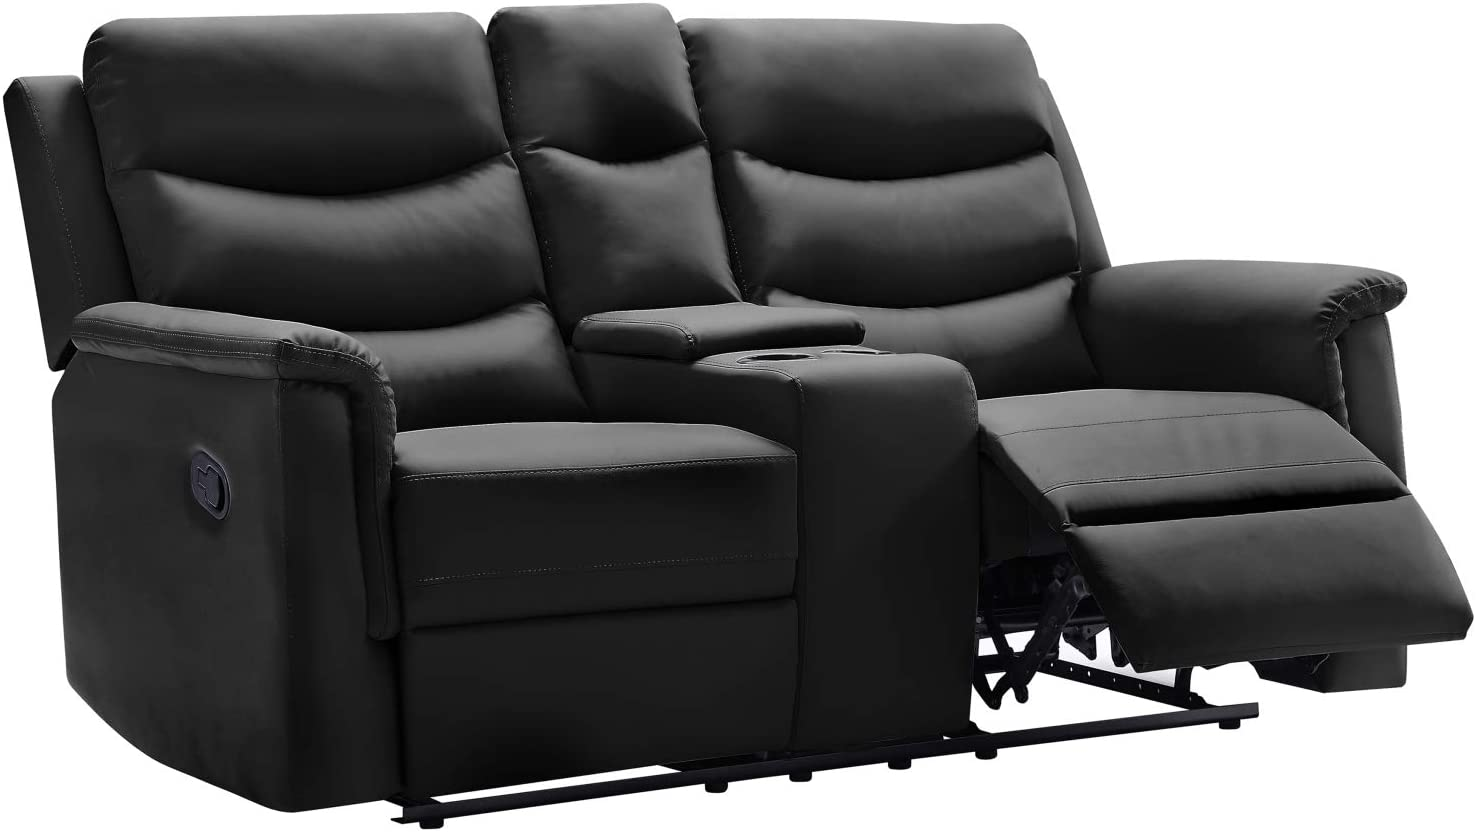 Double Reclining with trust Console PU RV Fau Sofa Furniture Love-seat Raleigh Mall